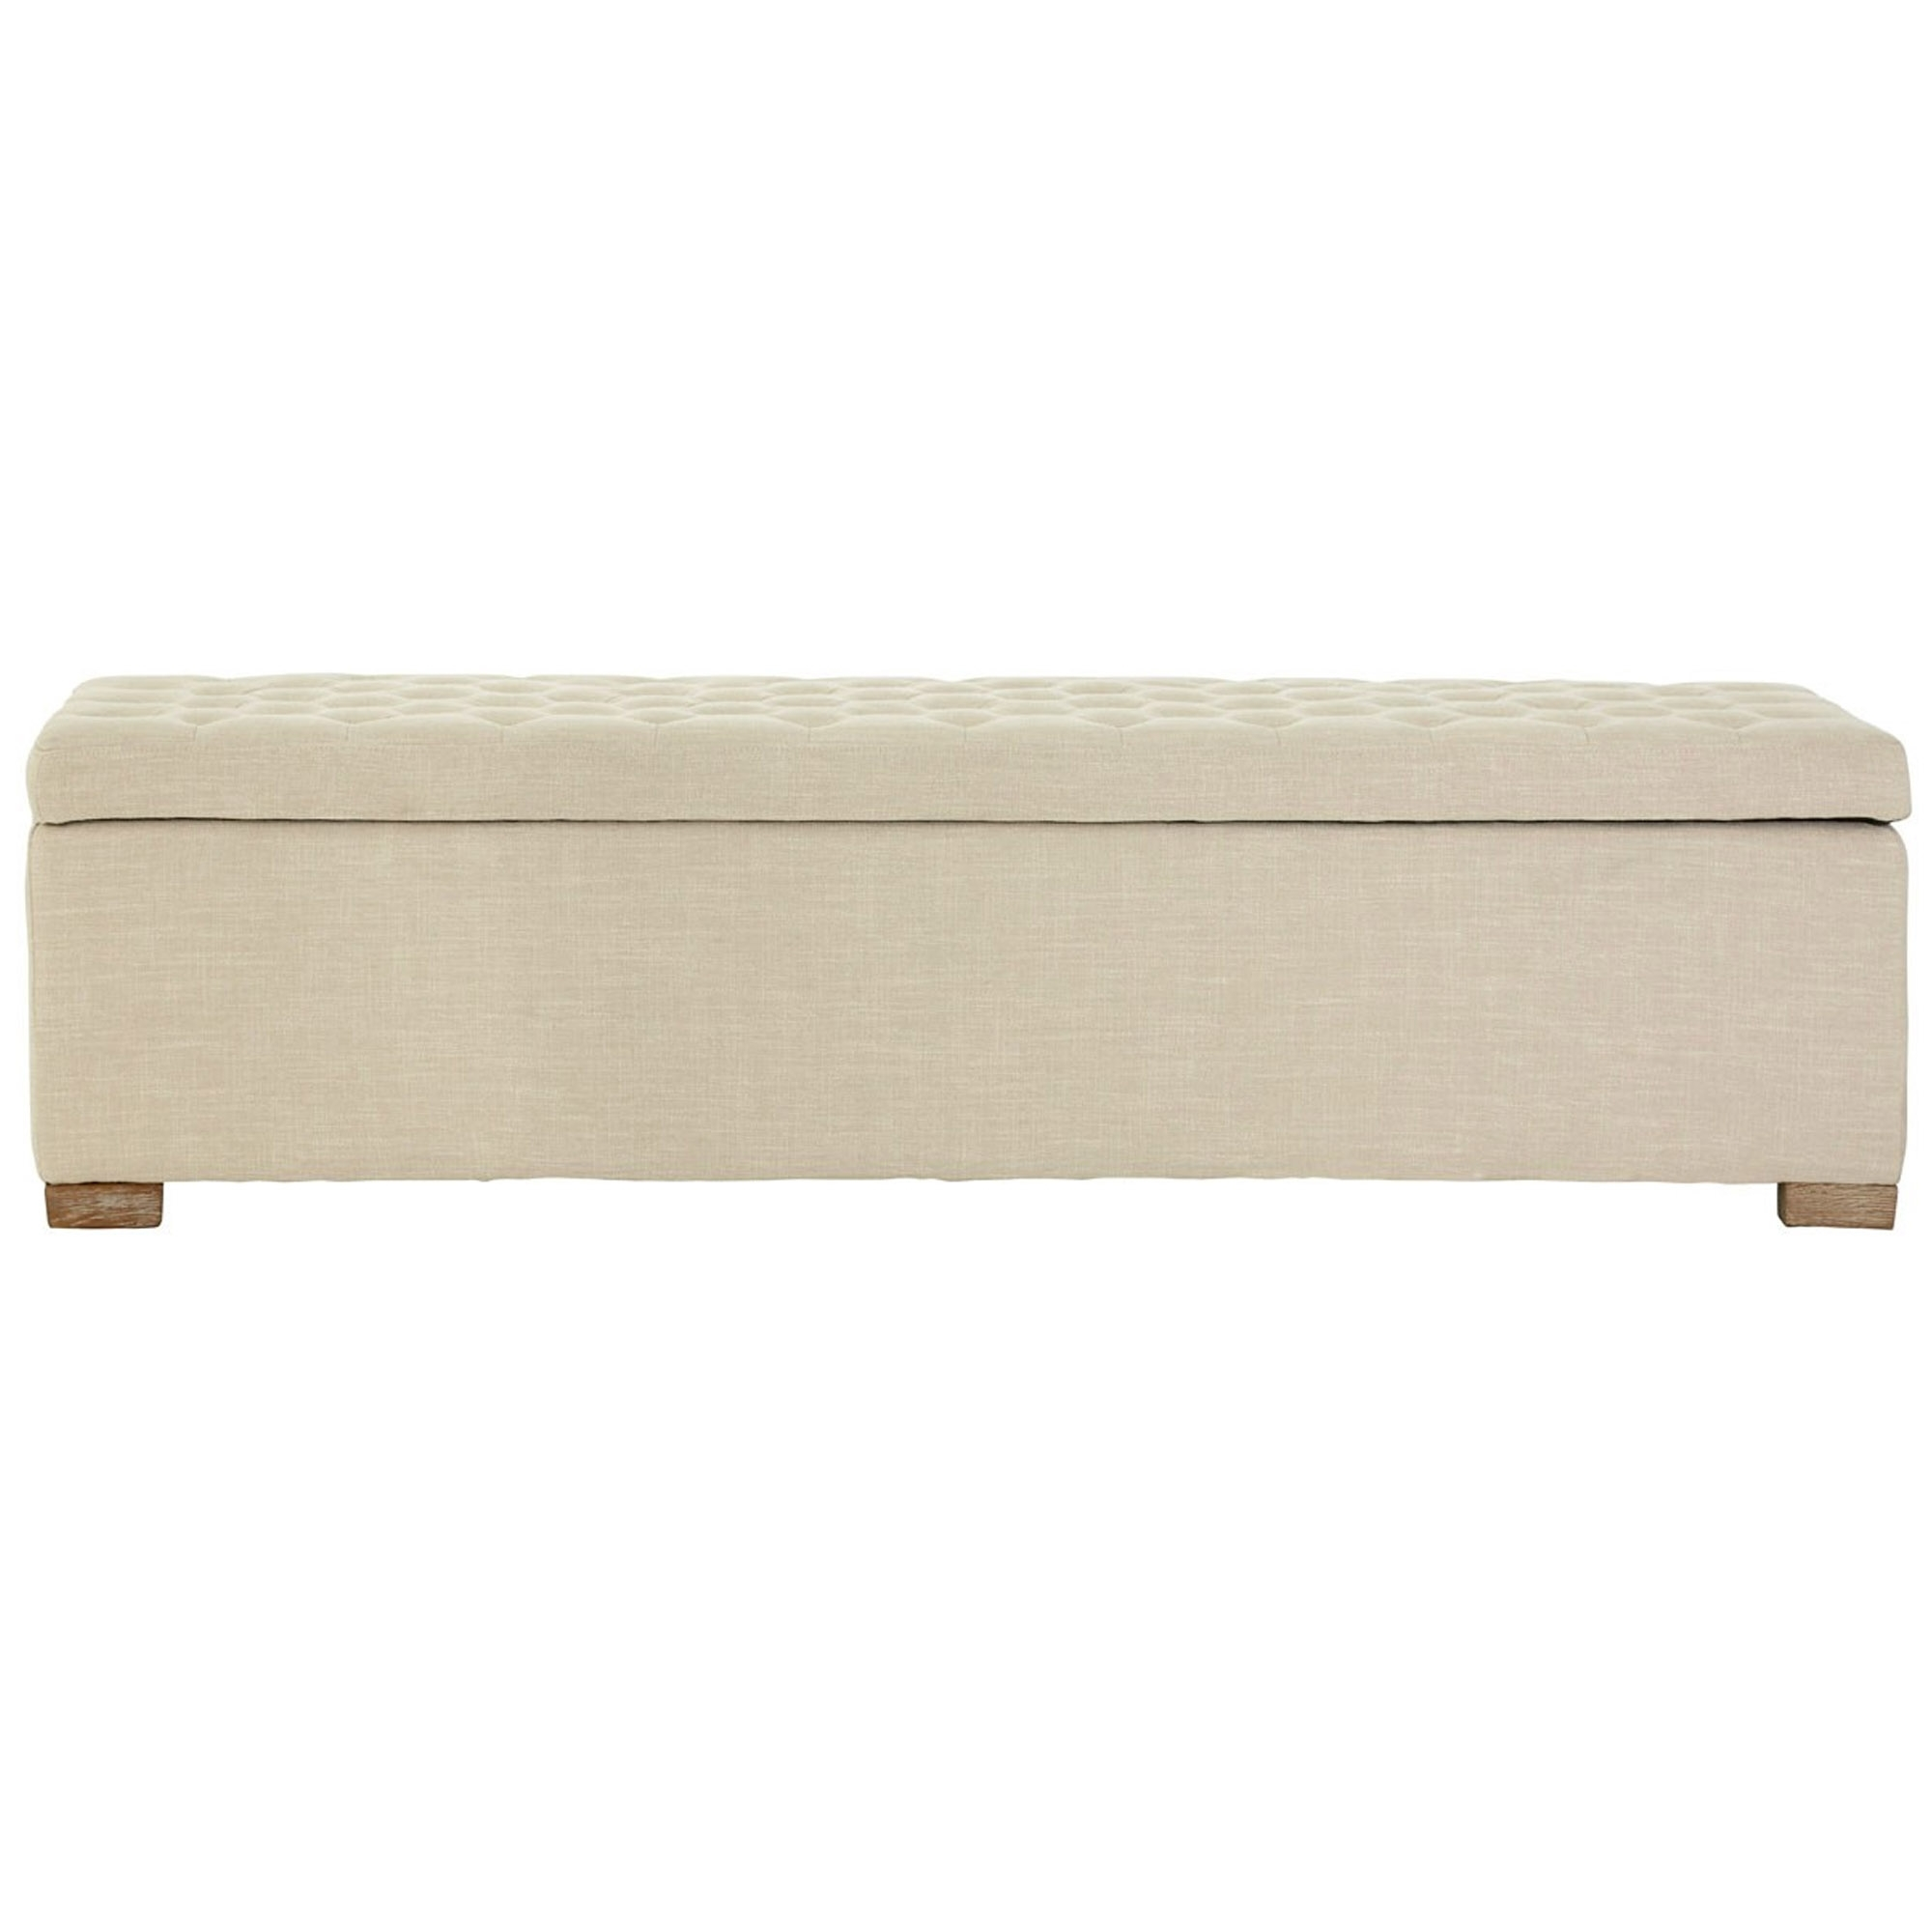 Ottomans Deacon Beige Upholstered Blanket Box: Antique-French Style Furniture